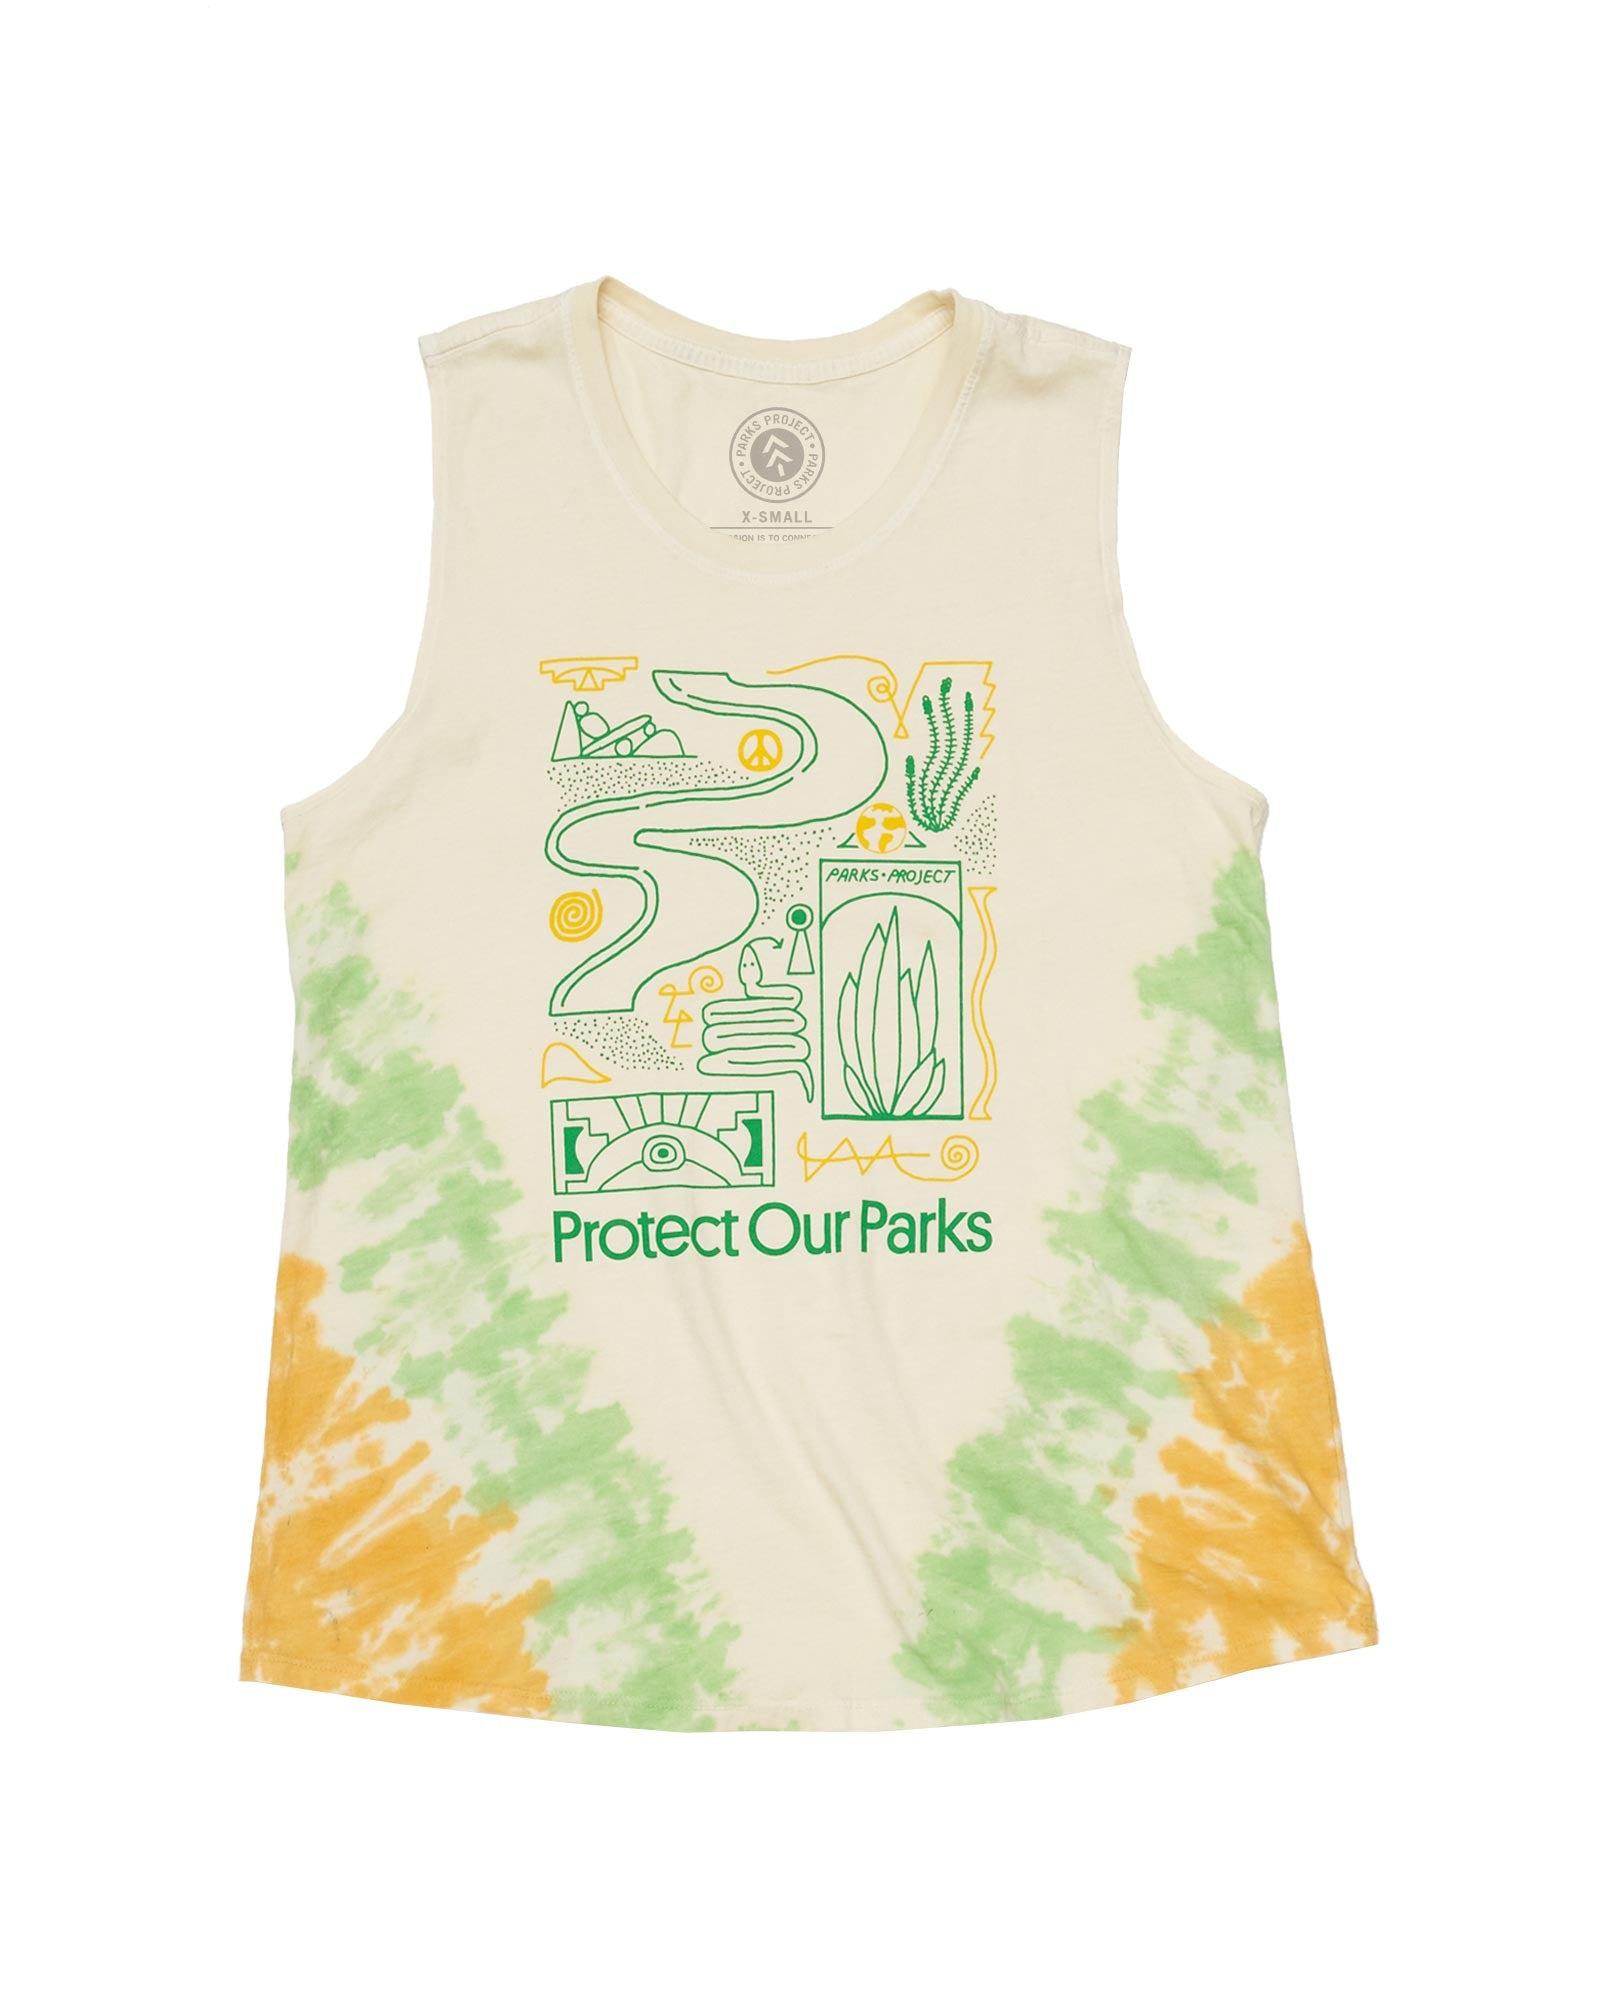 Protect Parks Icons Sleeveless Tank | Parks Project | National Park Tank